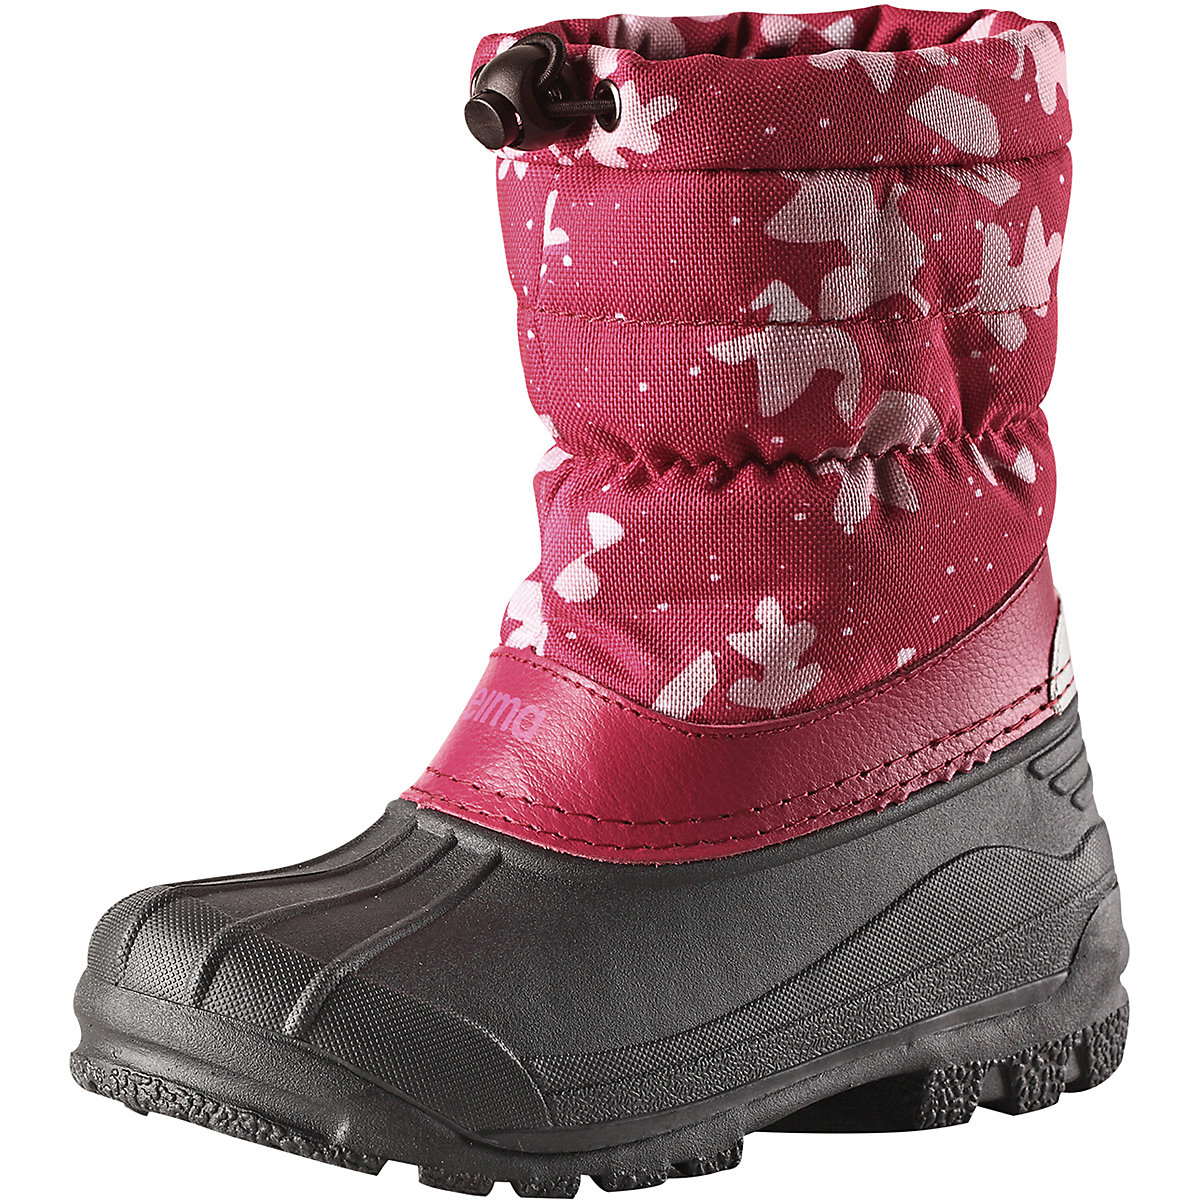 REIMA Boots 8624753 for girls winter girl baby shoes